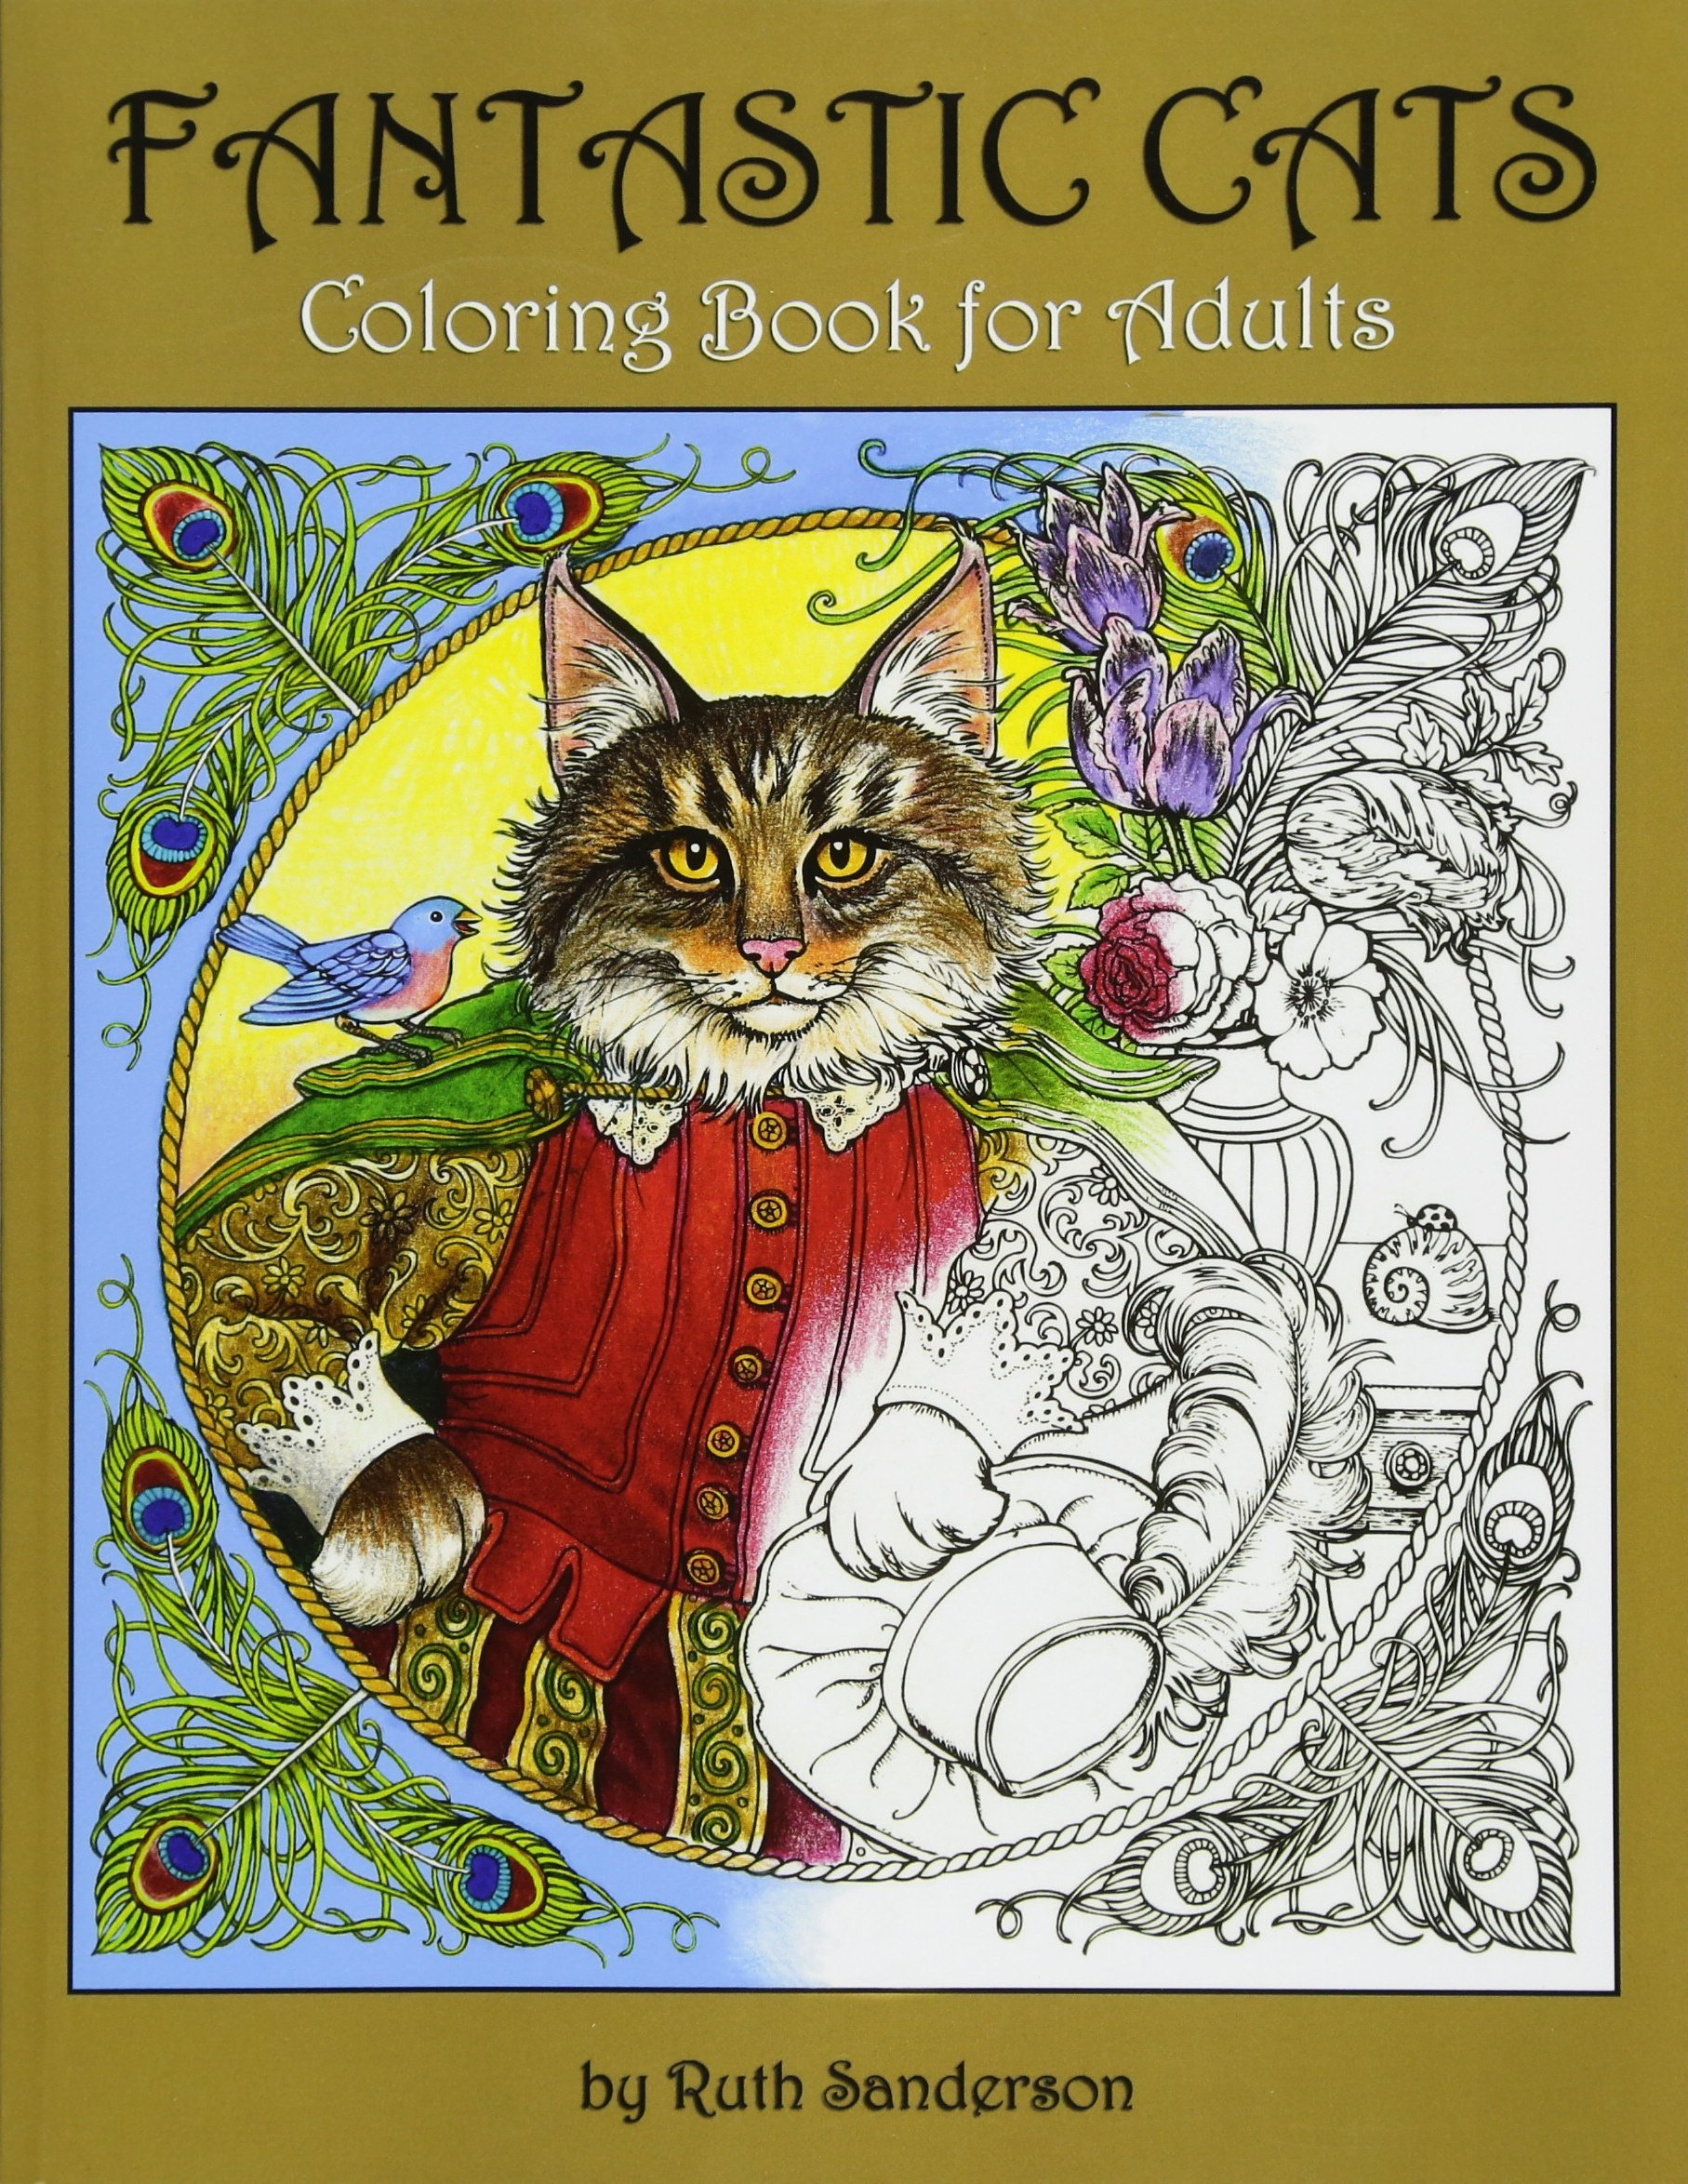 Fantastic Cats: Coloring Book for Adults